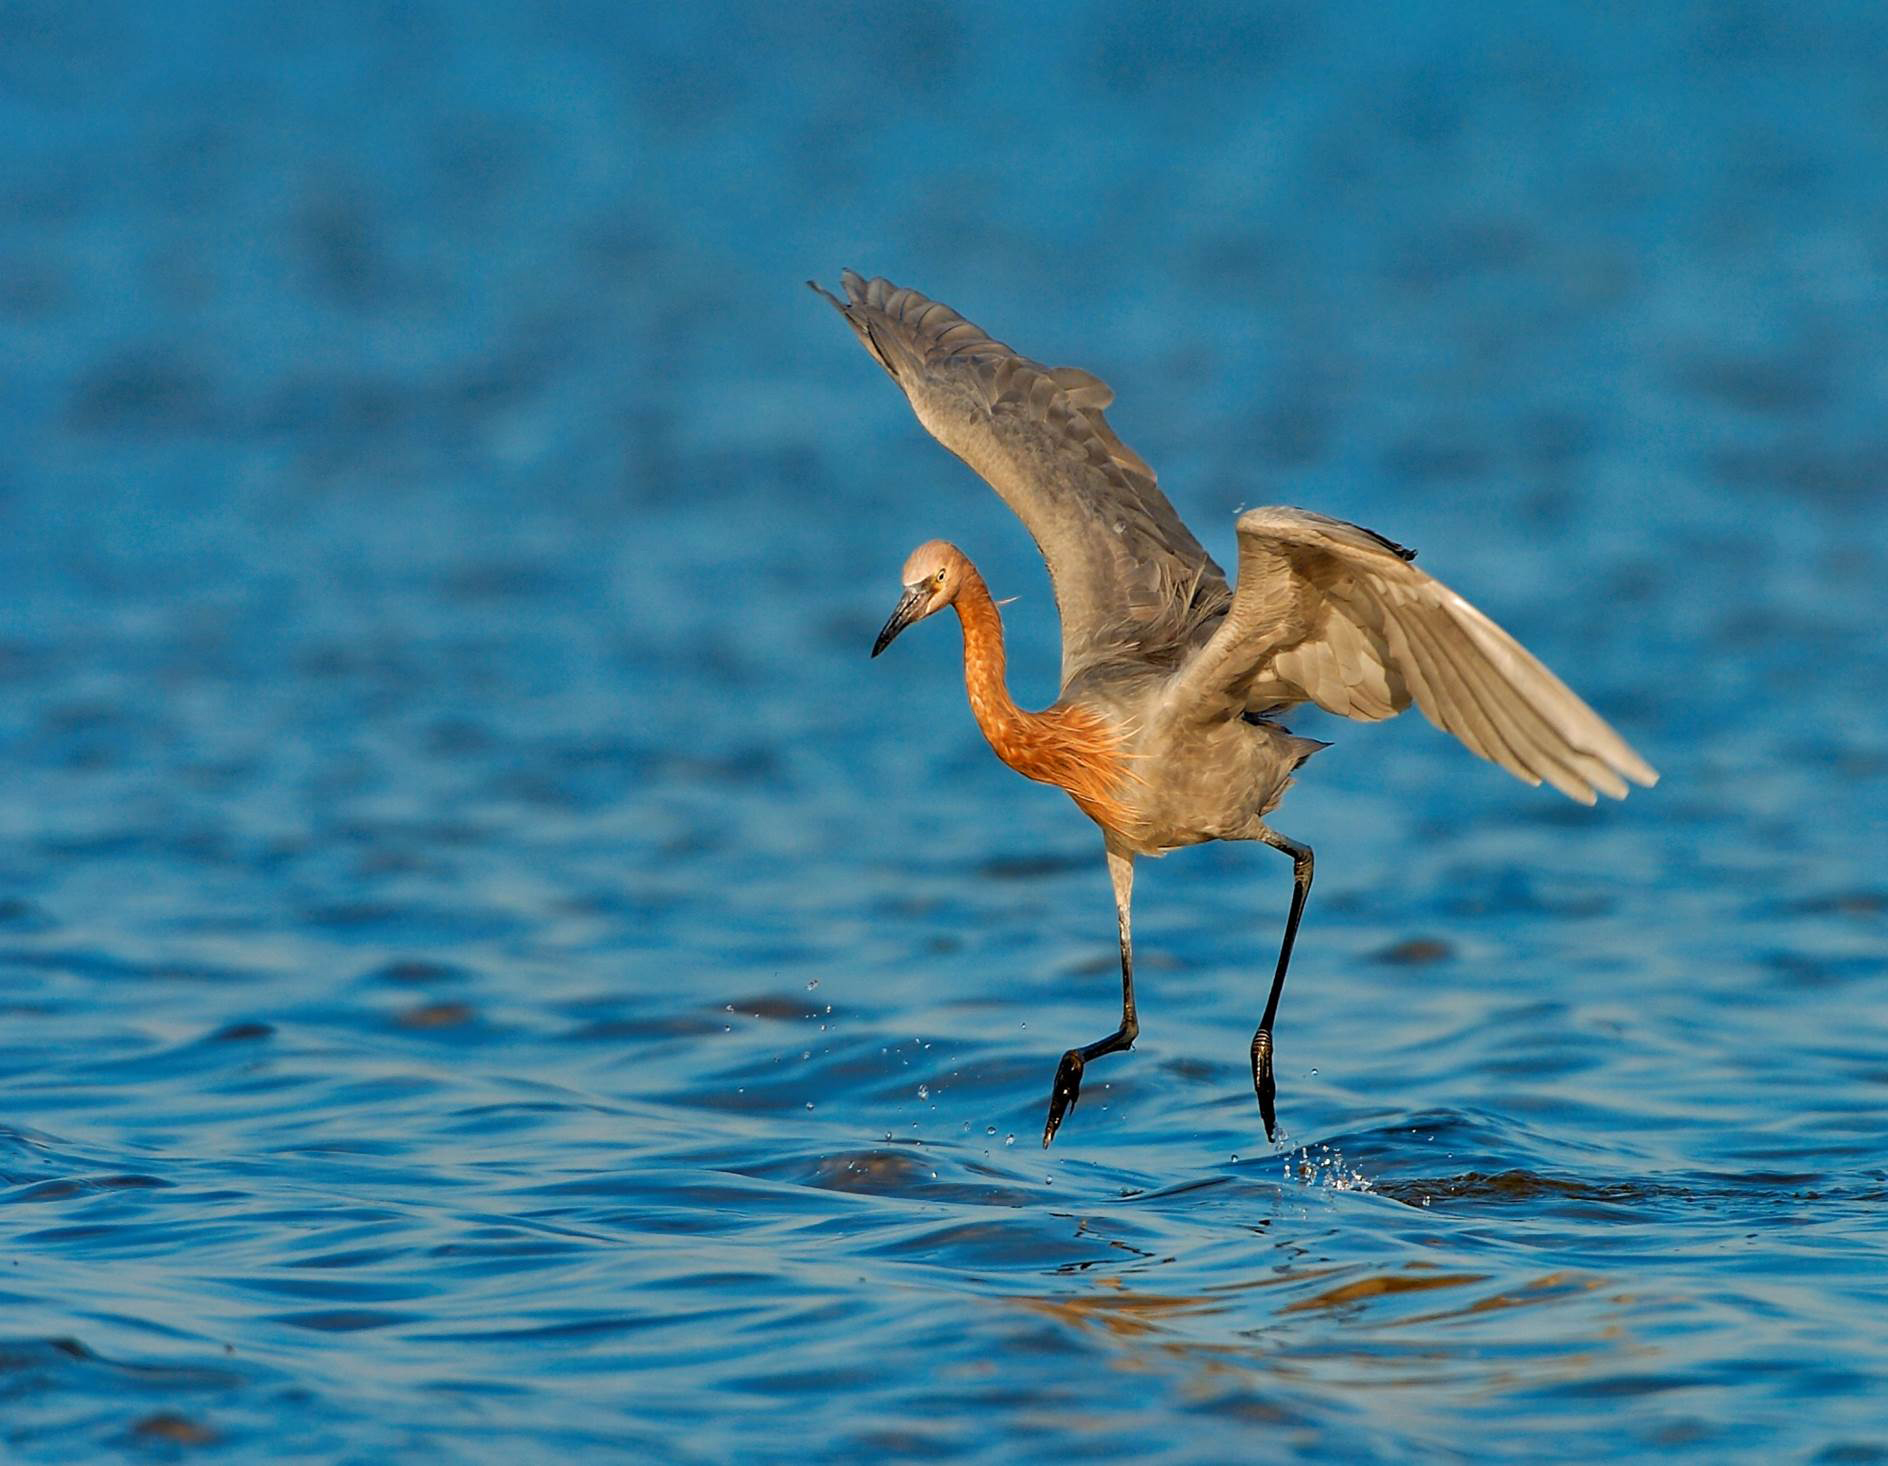 Bird landing on water